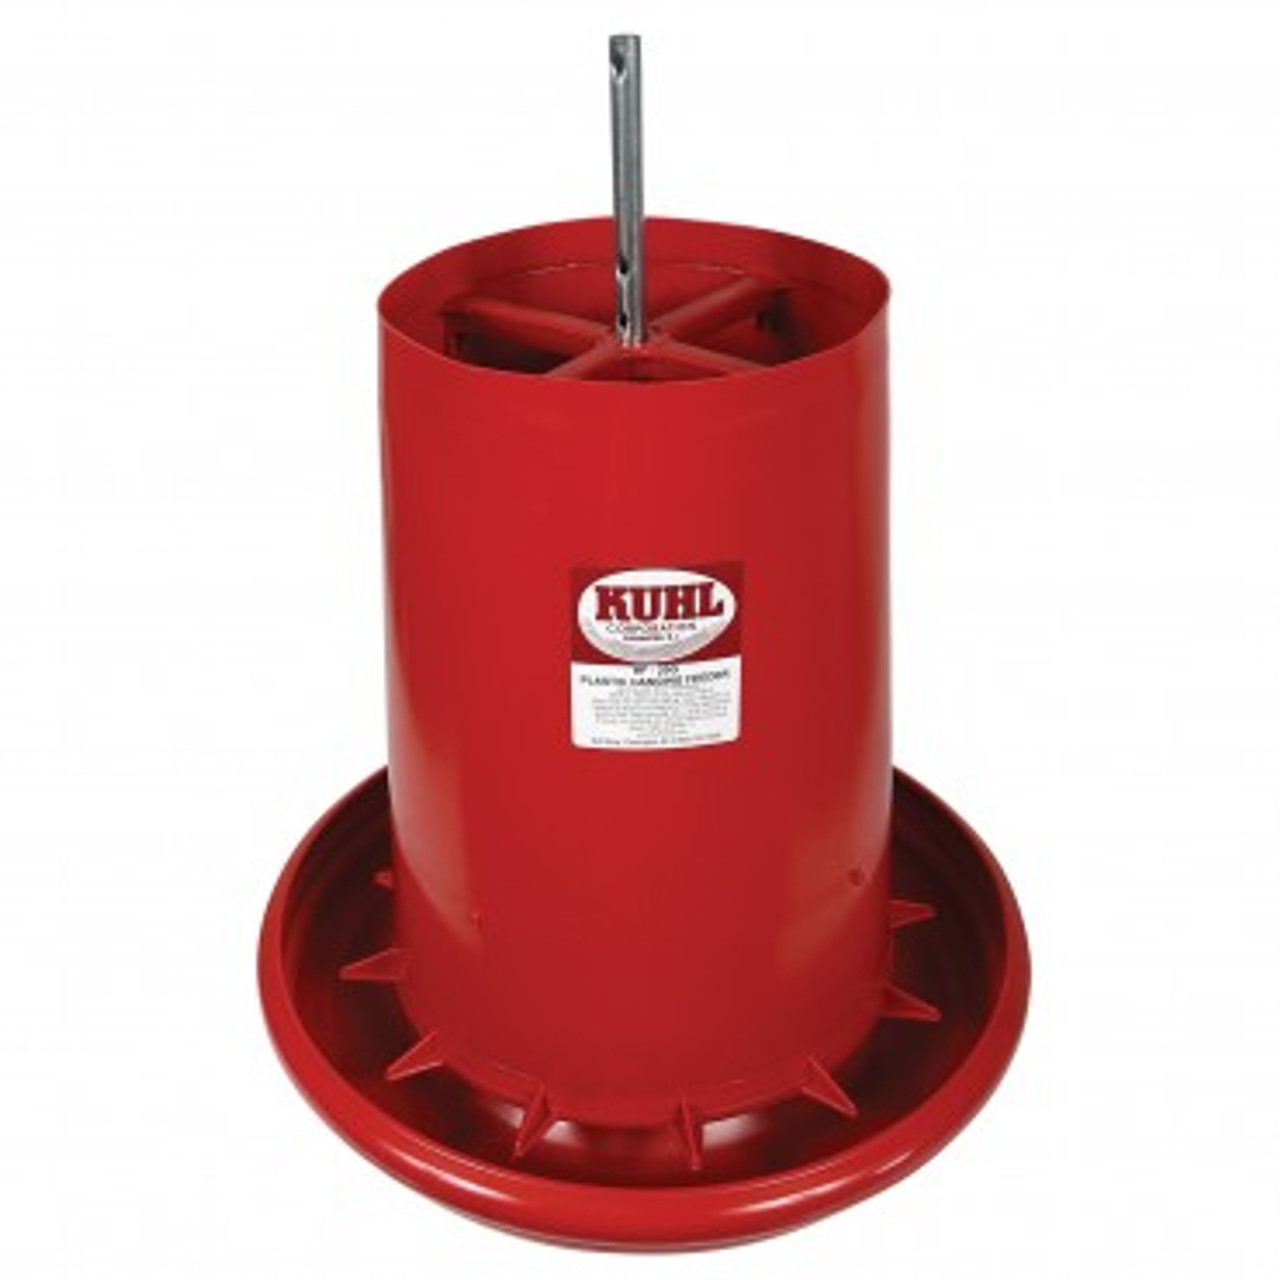 """This KUHL Plastic Hanging Feeder has a built-in grill that reduces wasted feed. Each unit is constructed of heavy-duty polyethylene plastic material for multiple seasons of trouble-free use. Specifications: Dimensions of the Pan: 2 3/4"""" H x 17 1/4"""" Diameter with a 5/8"""" rounded lip Capacity: 35 lbs."""